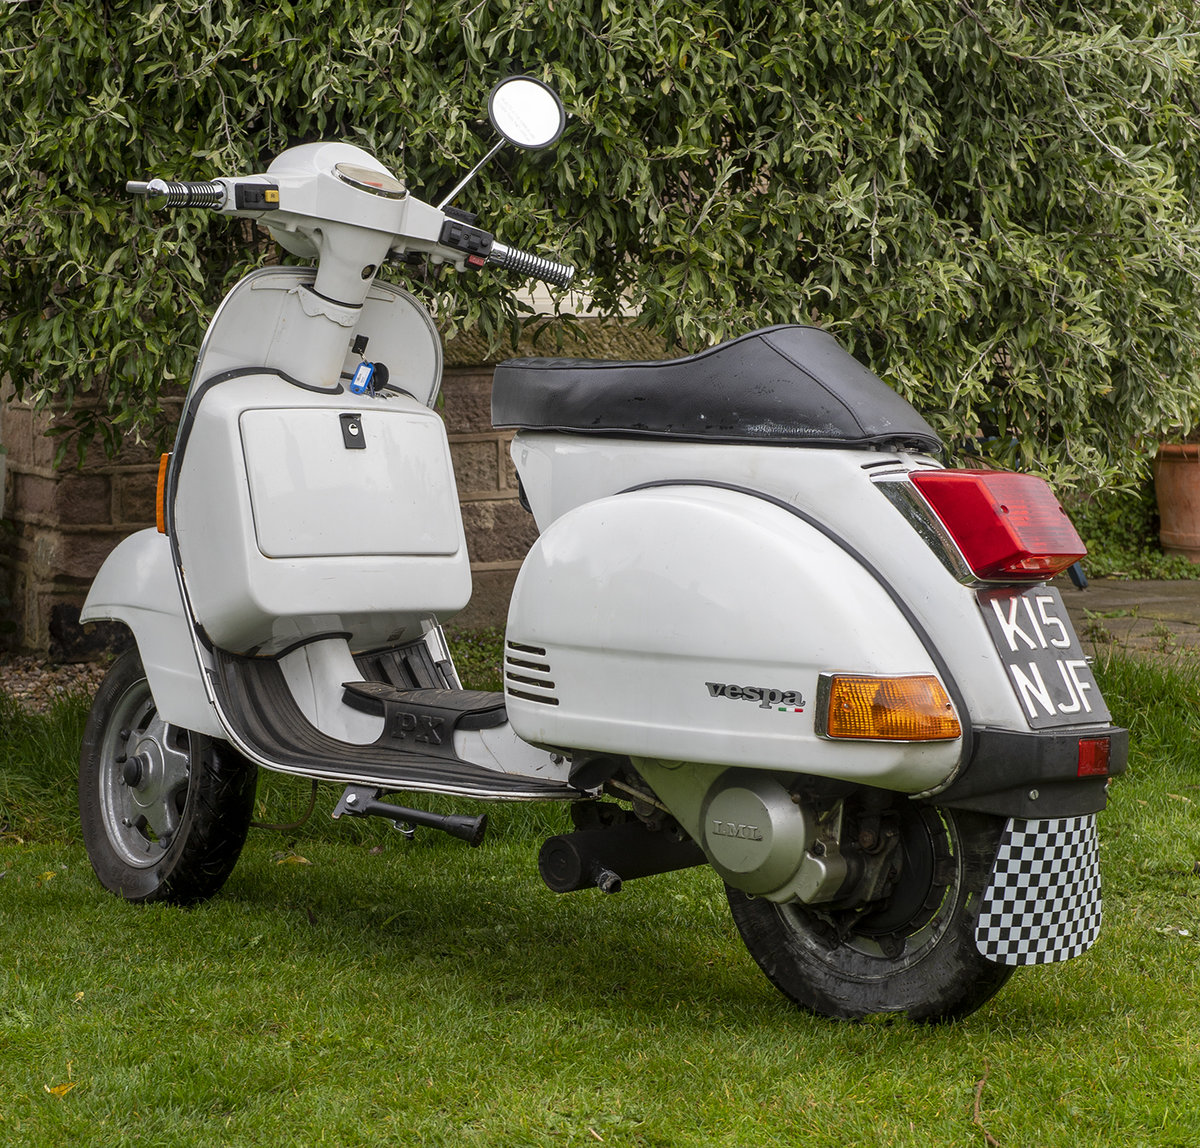 2013 Vespa ll 125 4t SOLD (picture 3 of 6)